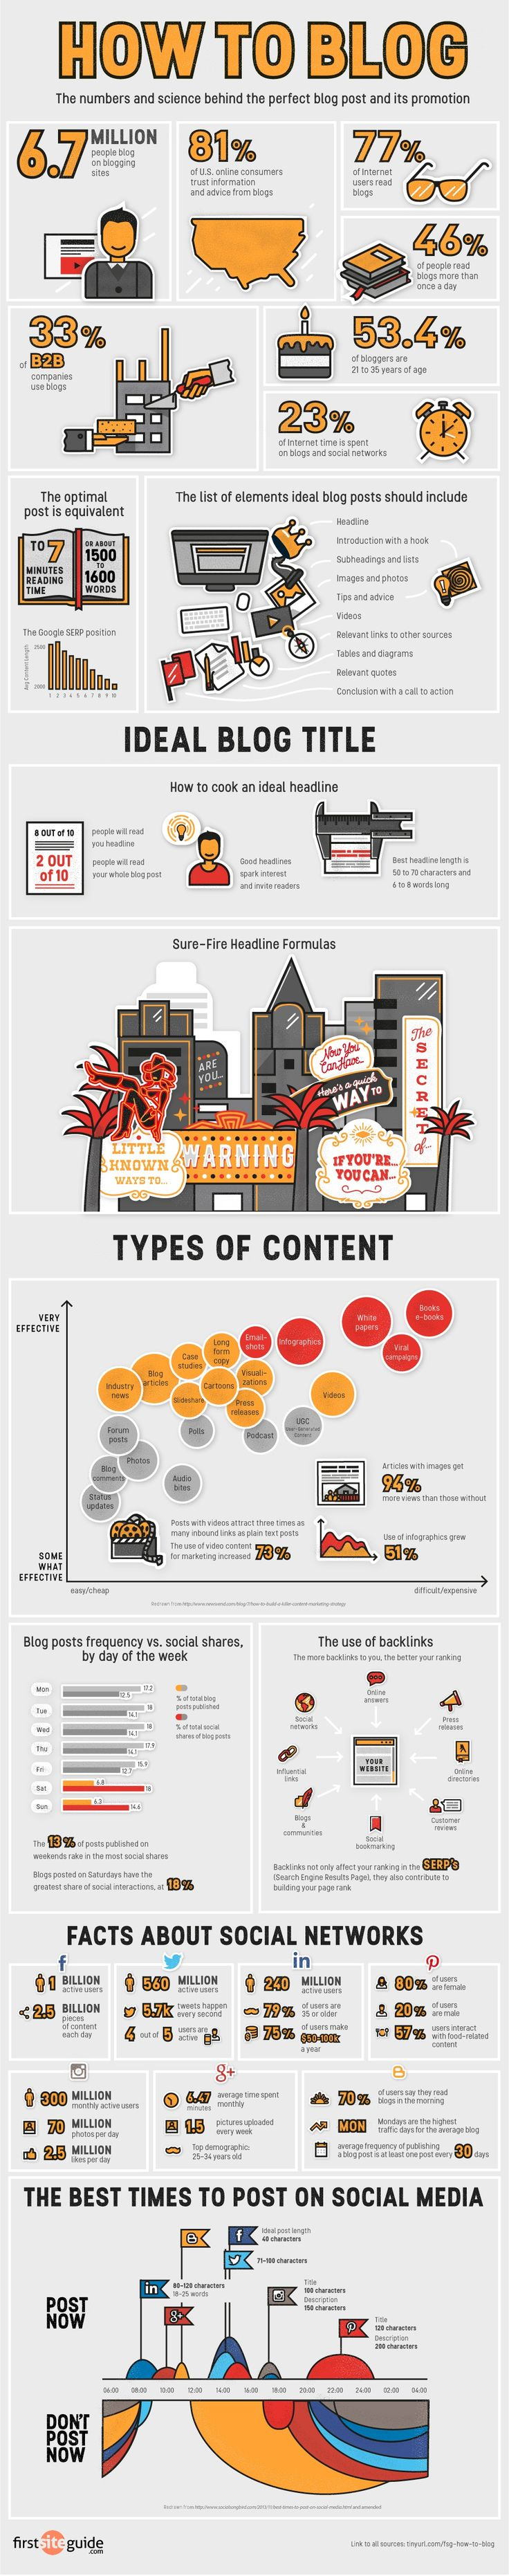 How to Blog - #infographic